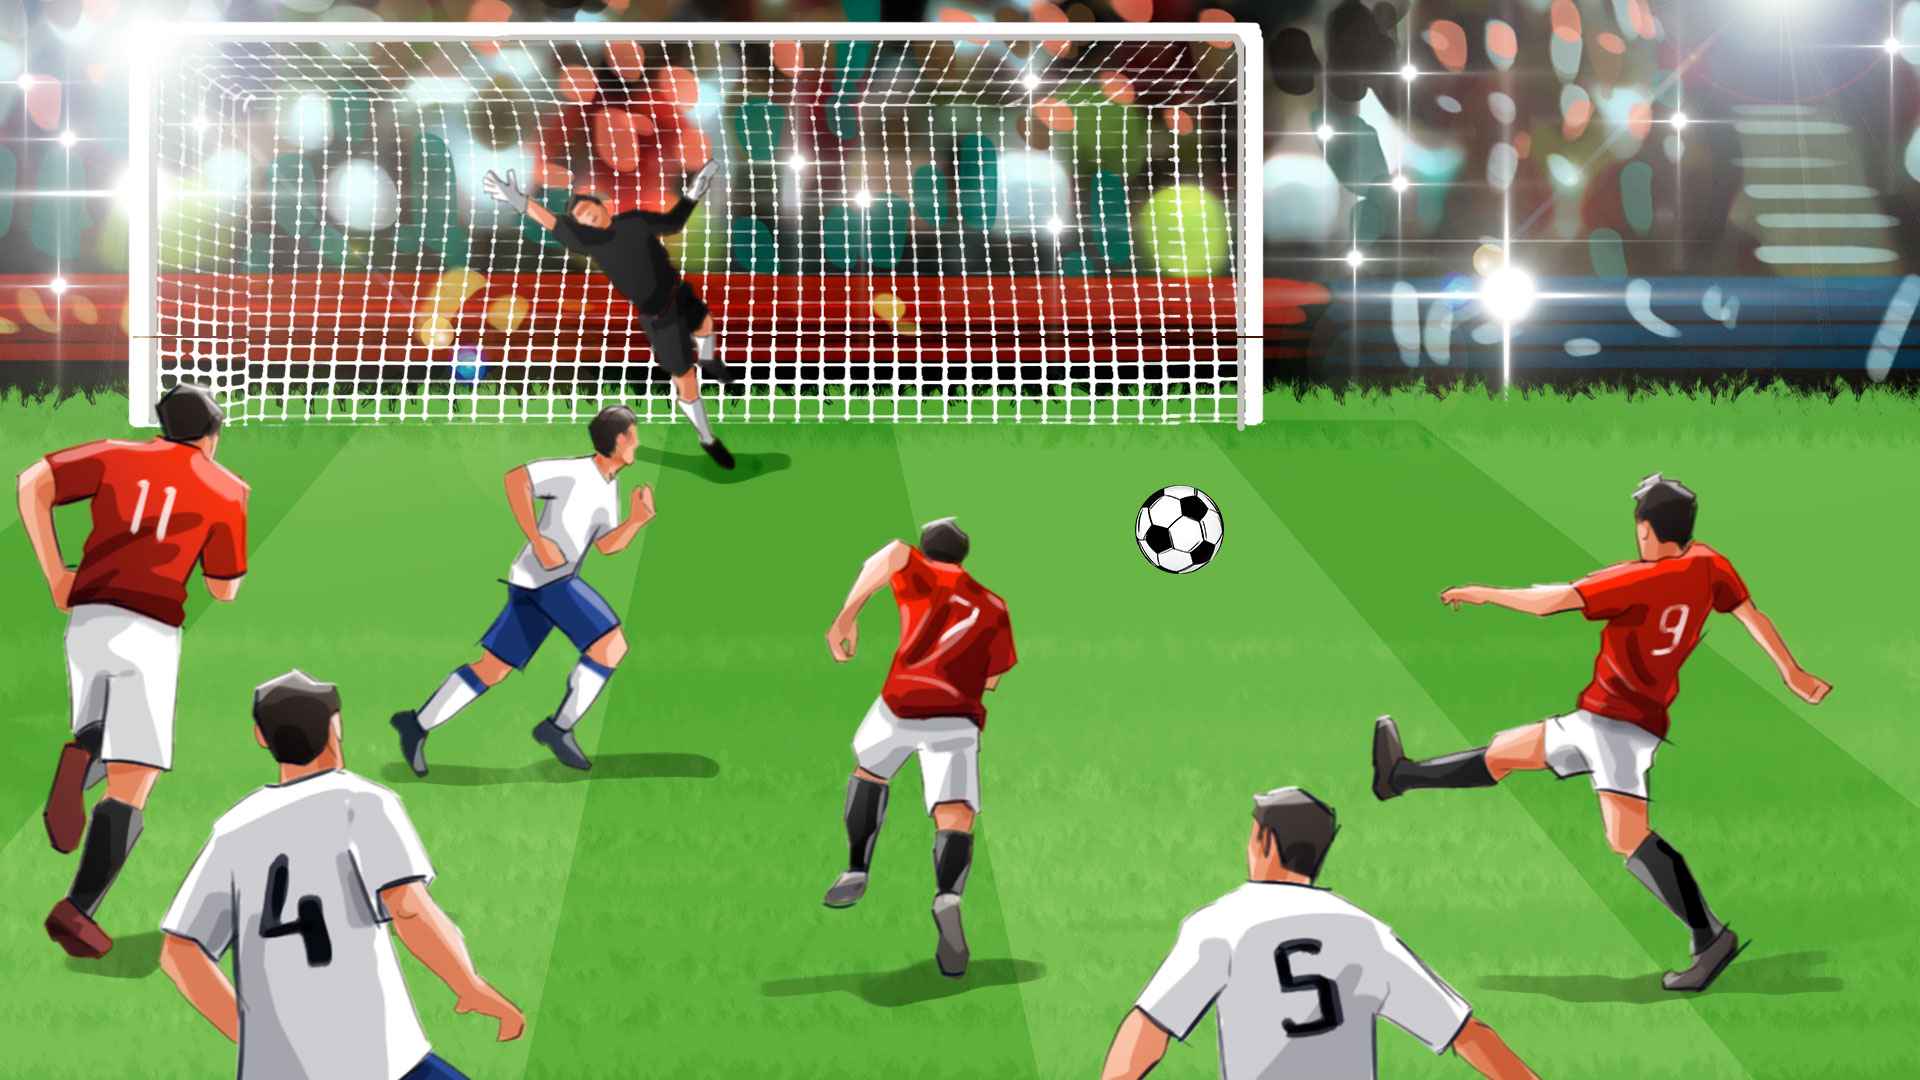 soccer action illustration, 'Famous matches - illustrations for web game